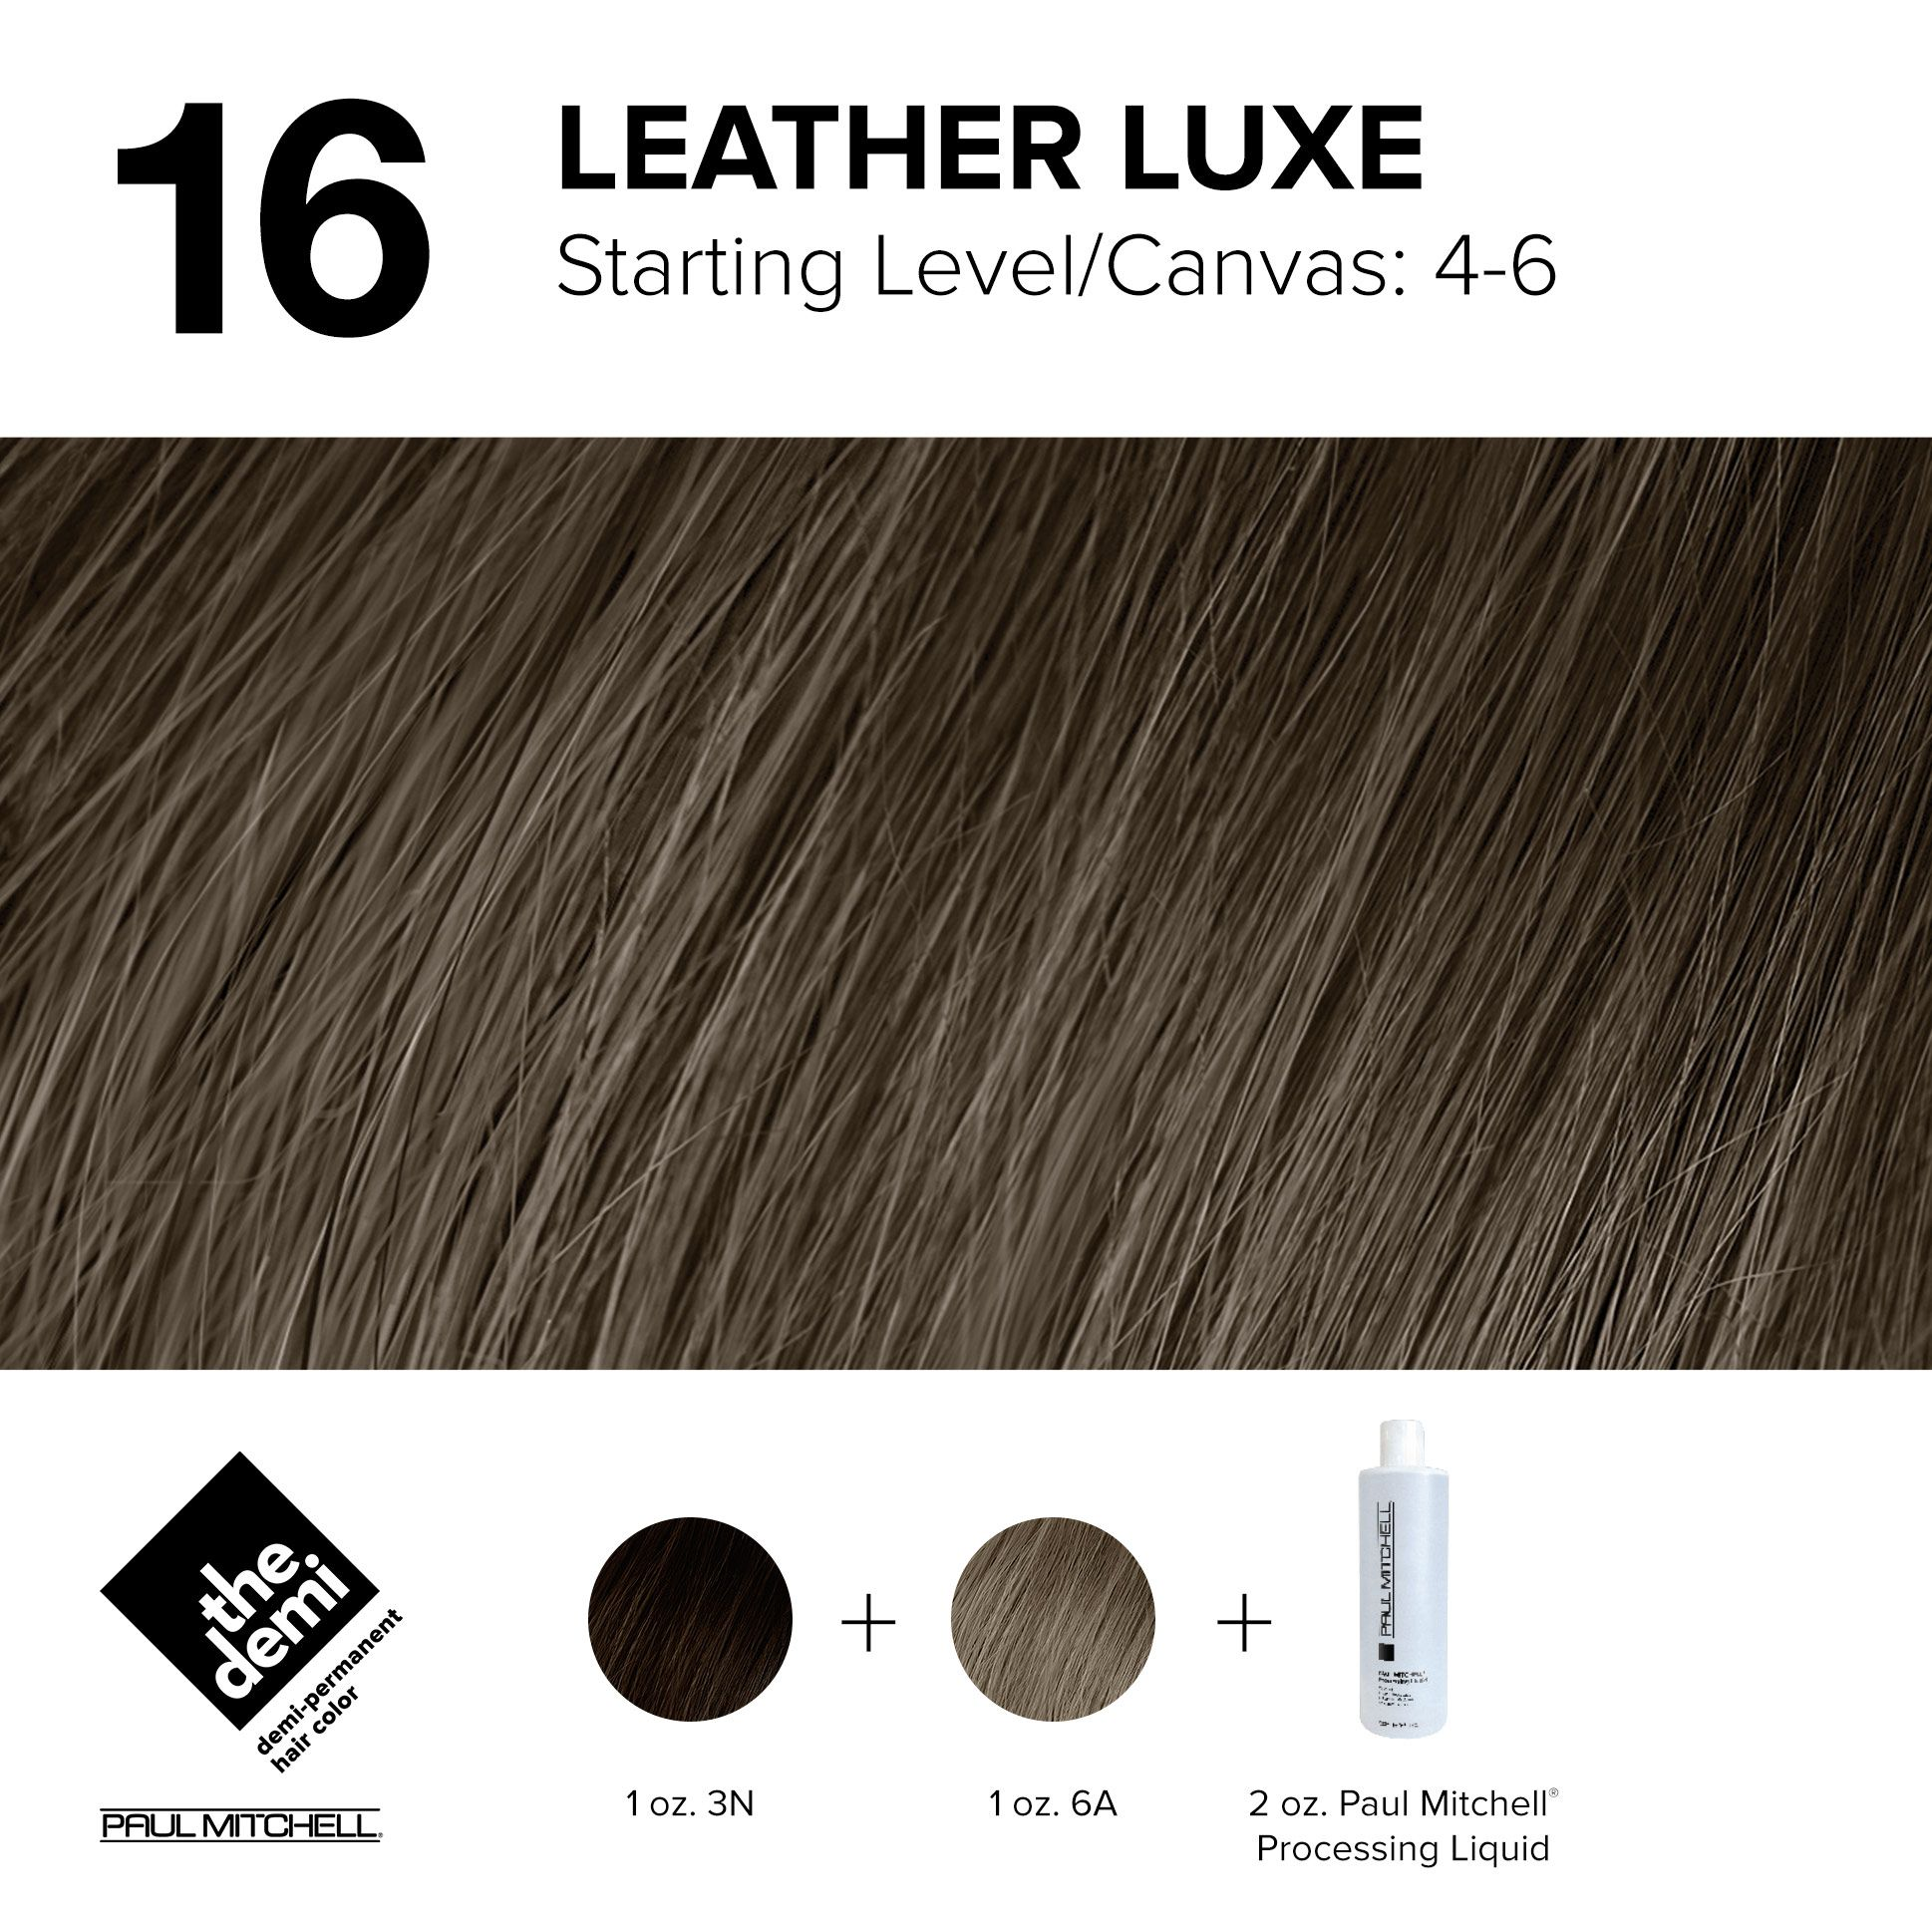 16 Leather Luxe Paul Mitchell Hair Products Paul Mitchell Color Paul Mitchell Color Chart